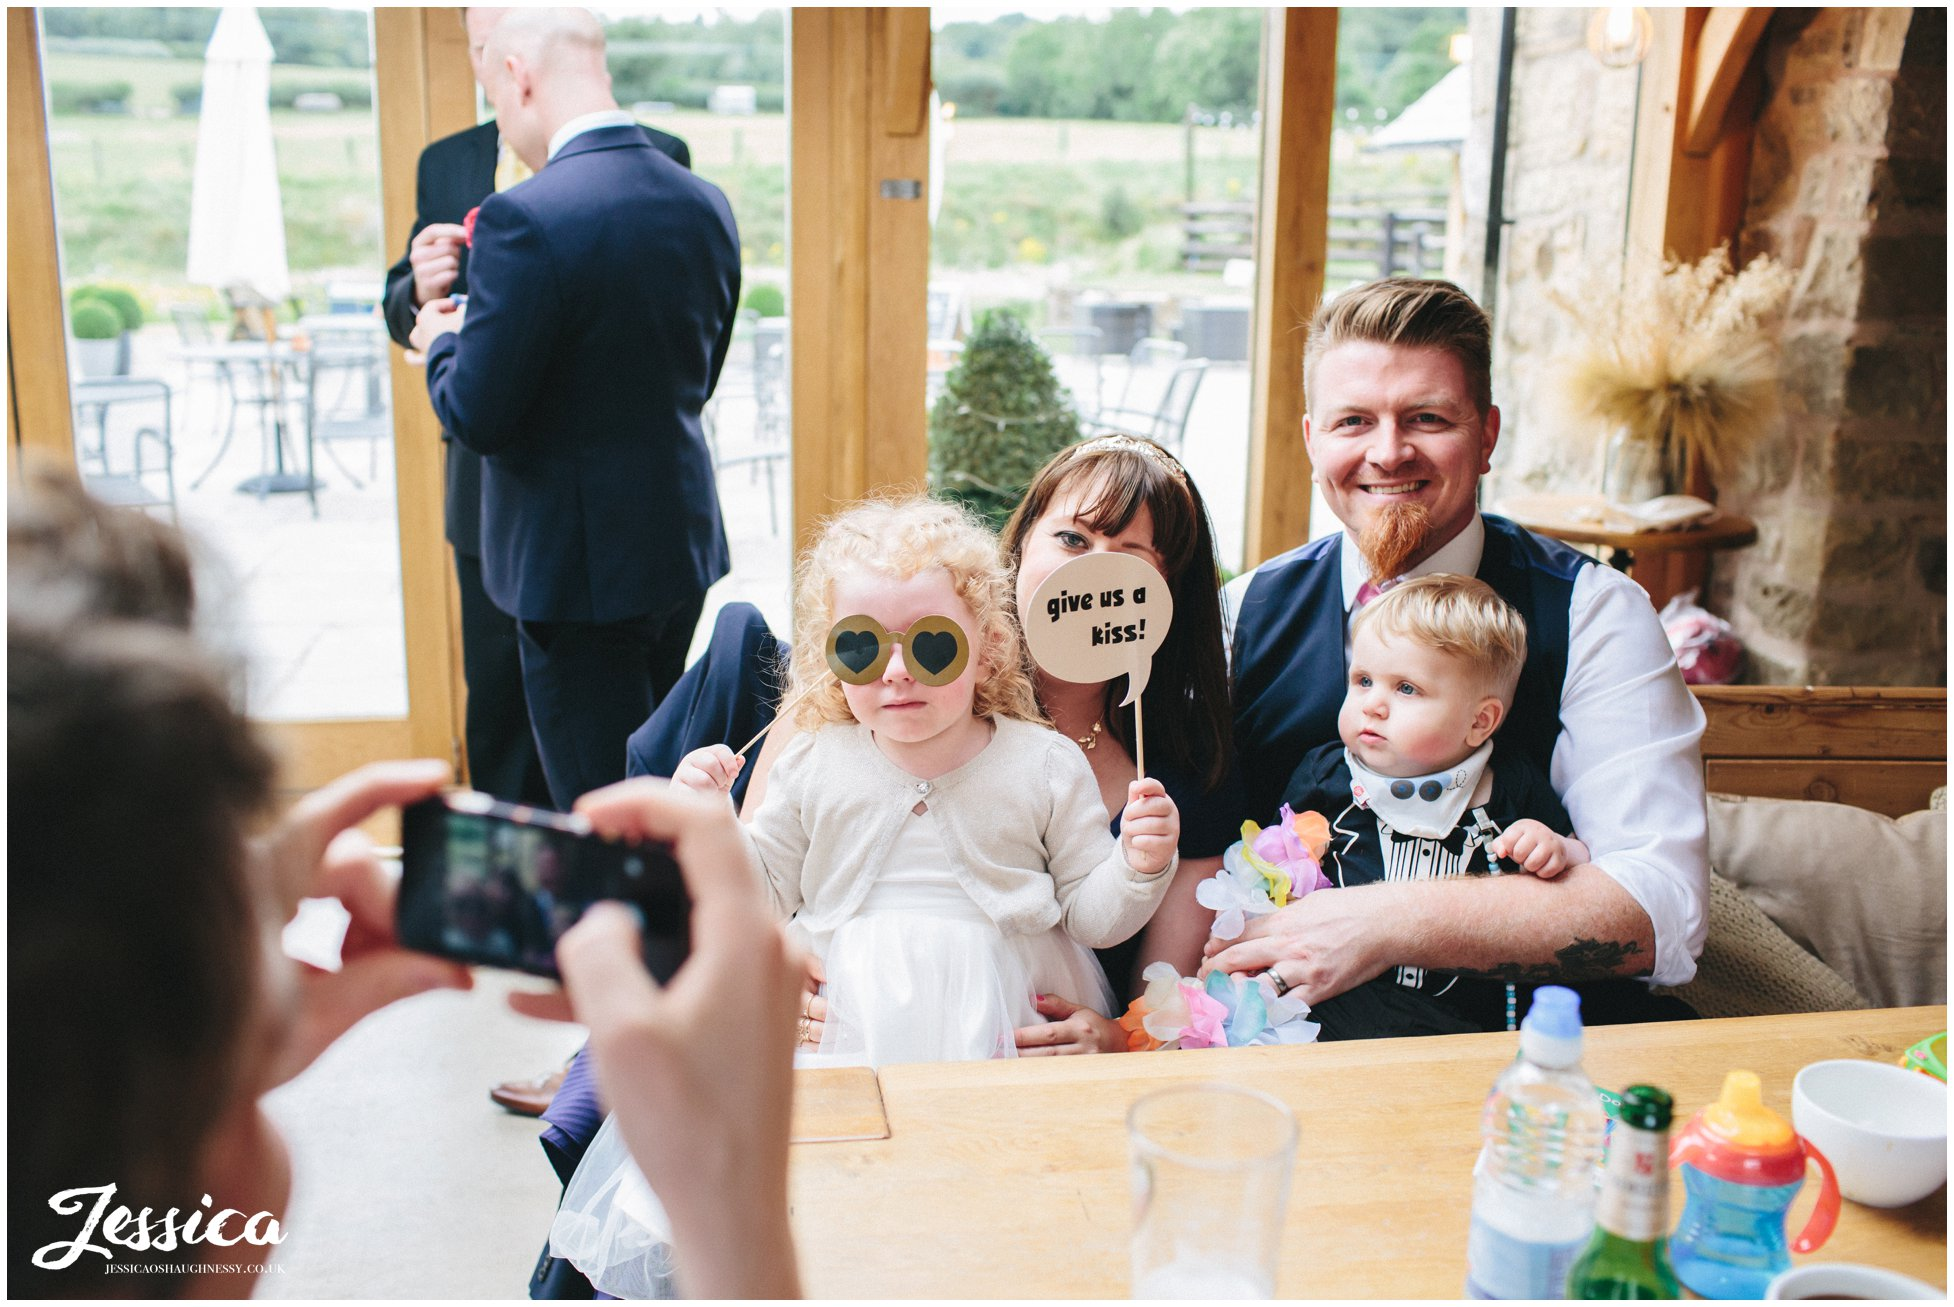 family pose for a photograph during the wedding reception at a north wales wedding